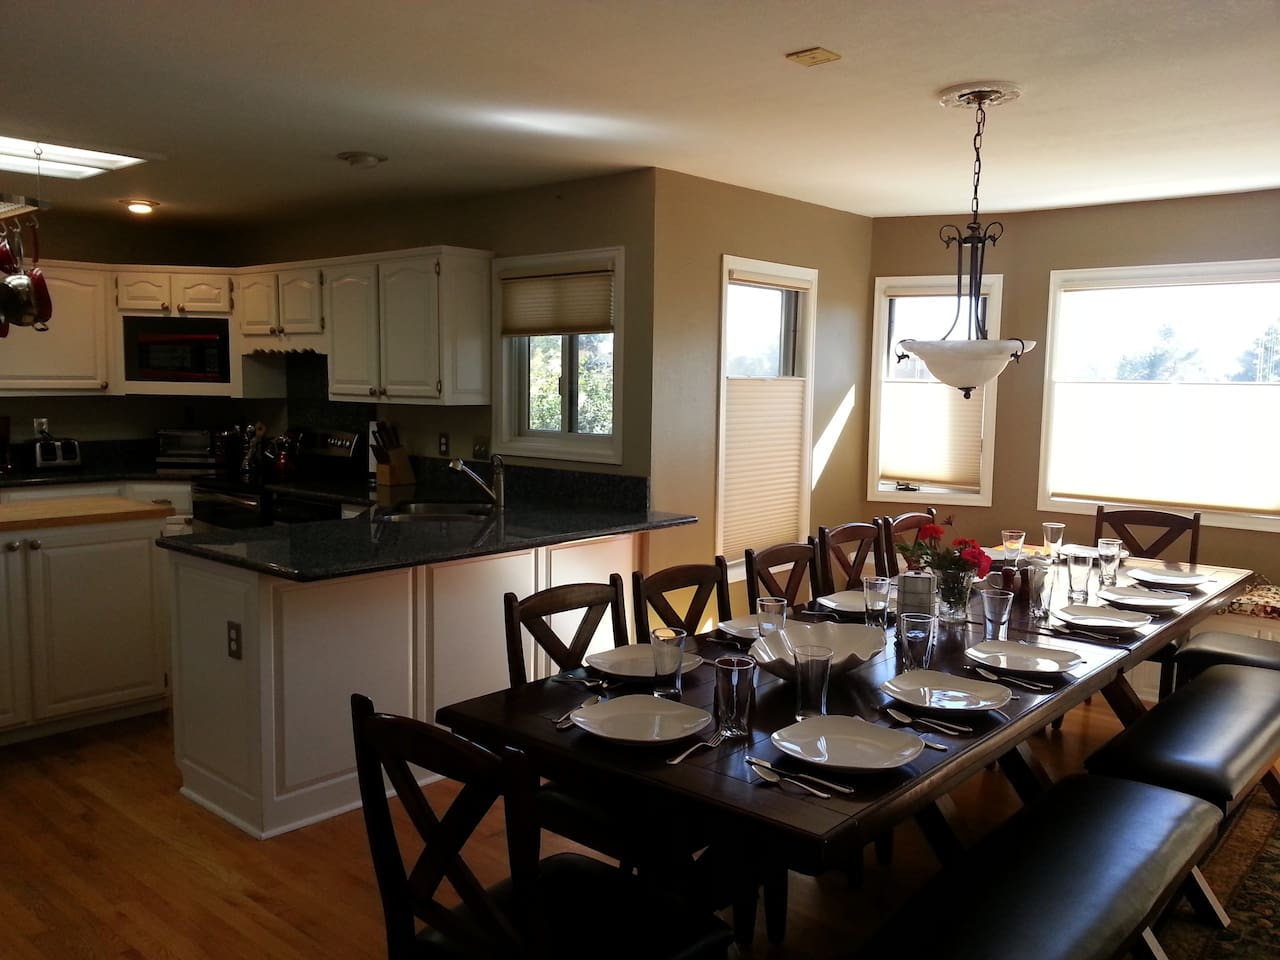 Large dinning area with an open kitchen.